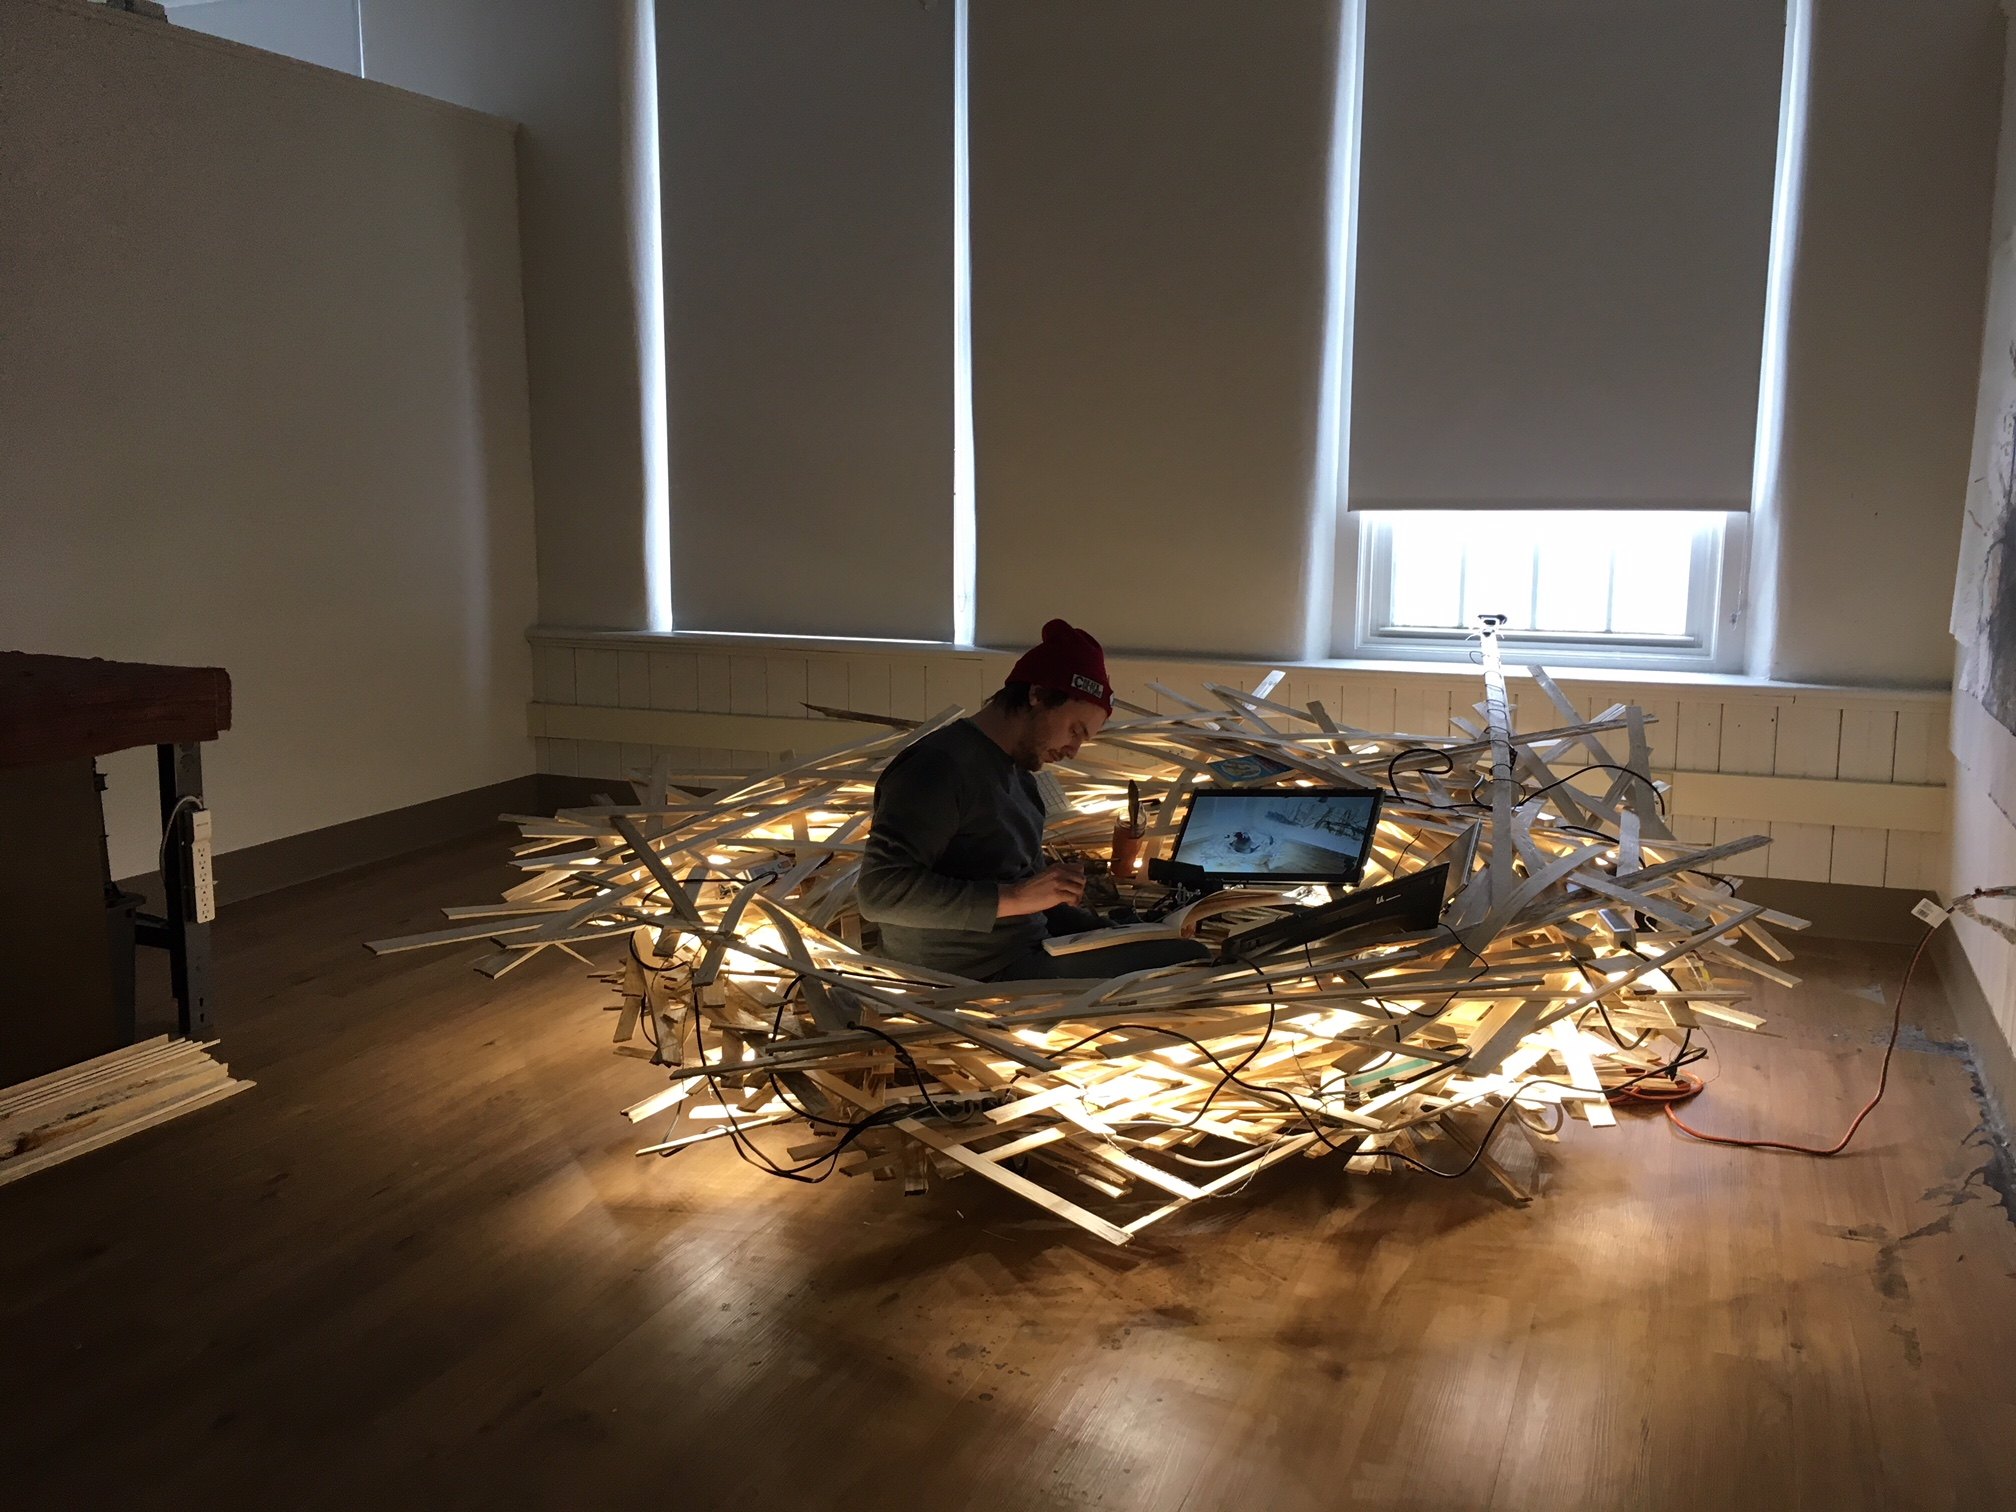 Kirby Mill Nest Performance, 2019, Chad Uehlein, Photo: Janet Pritchard